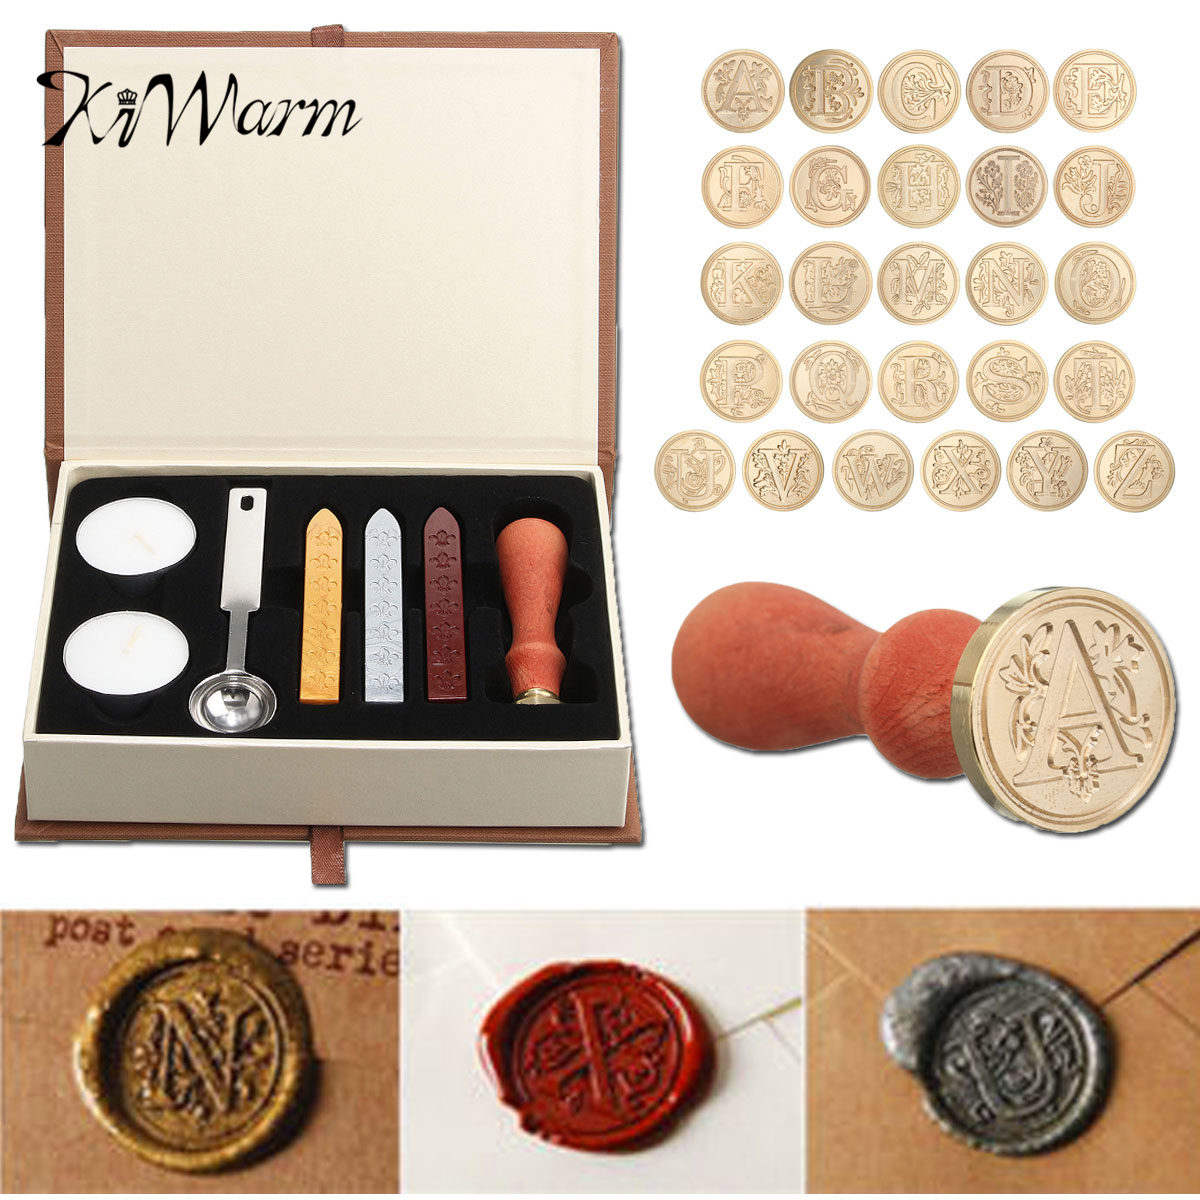 KiWarm New Lauched Romantic Gift A-Z 26 Alphabets Letters Sealing Wax Stamp Set 1* Wax Stamp 3*Wax Stick 1*Spoon Or Single Stamp creative wax envelope set literary romantic gift confession artifact the new year wedding gift